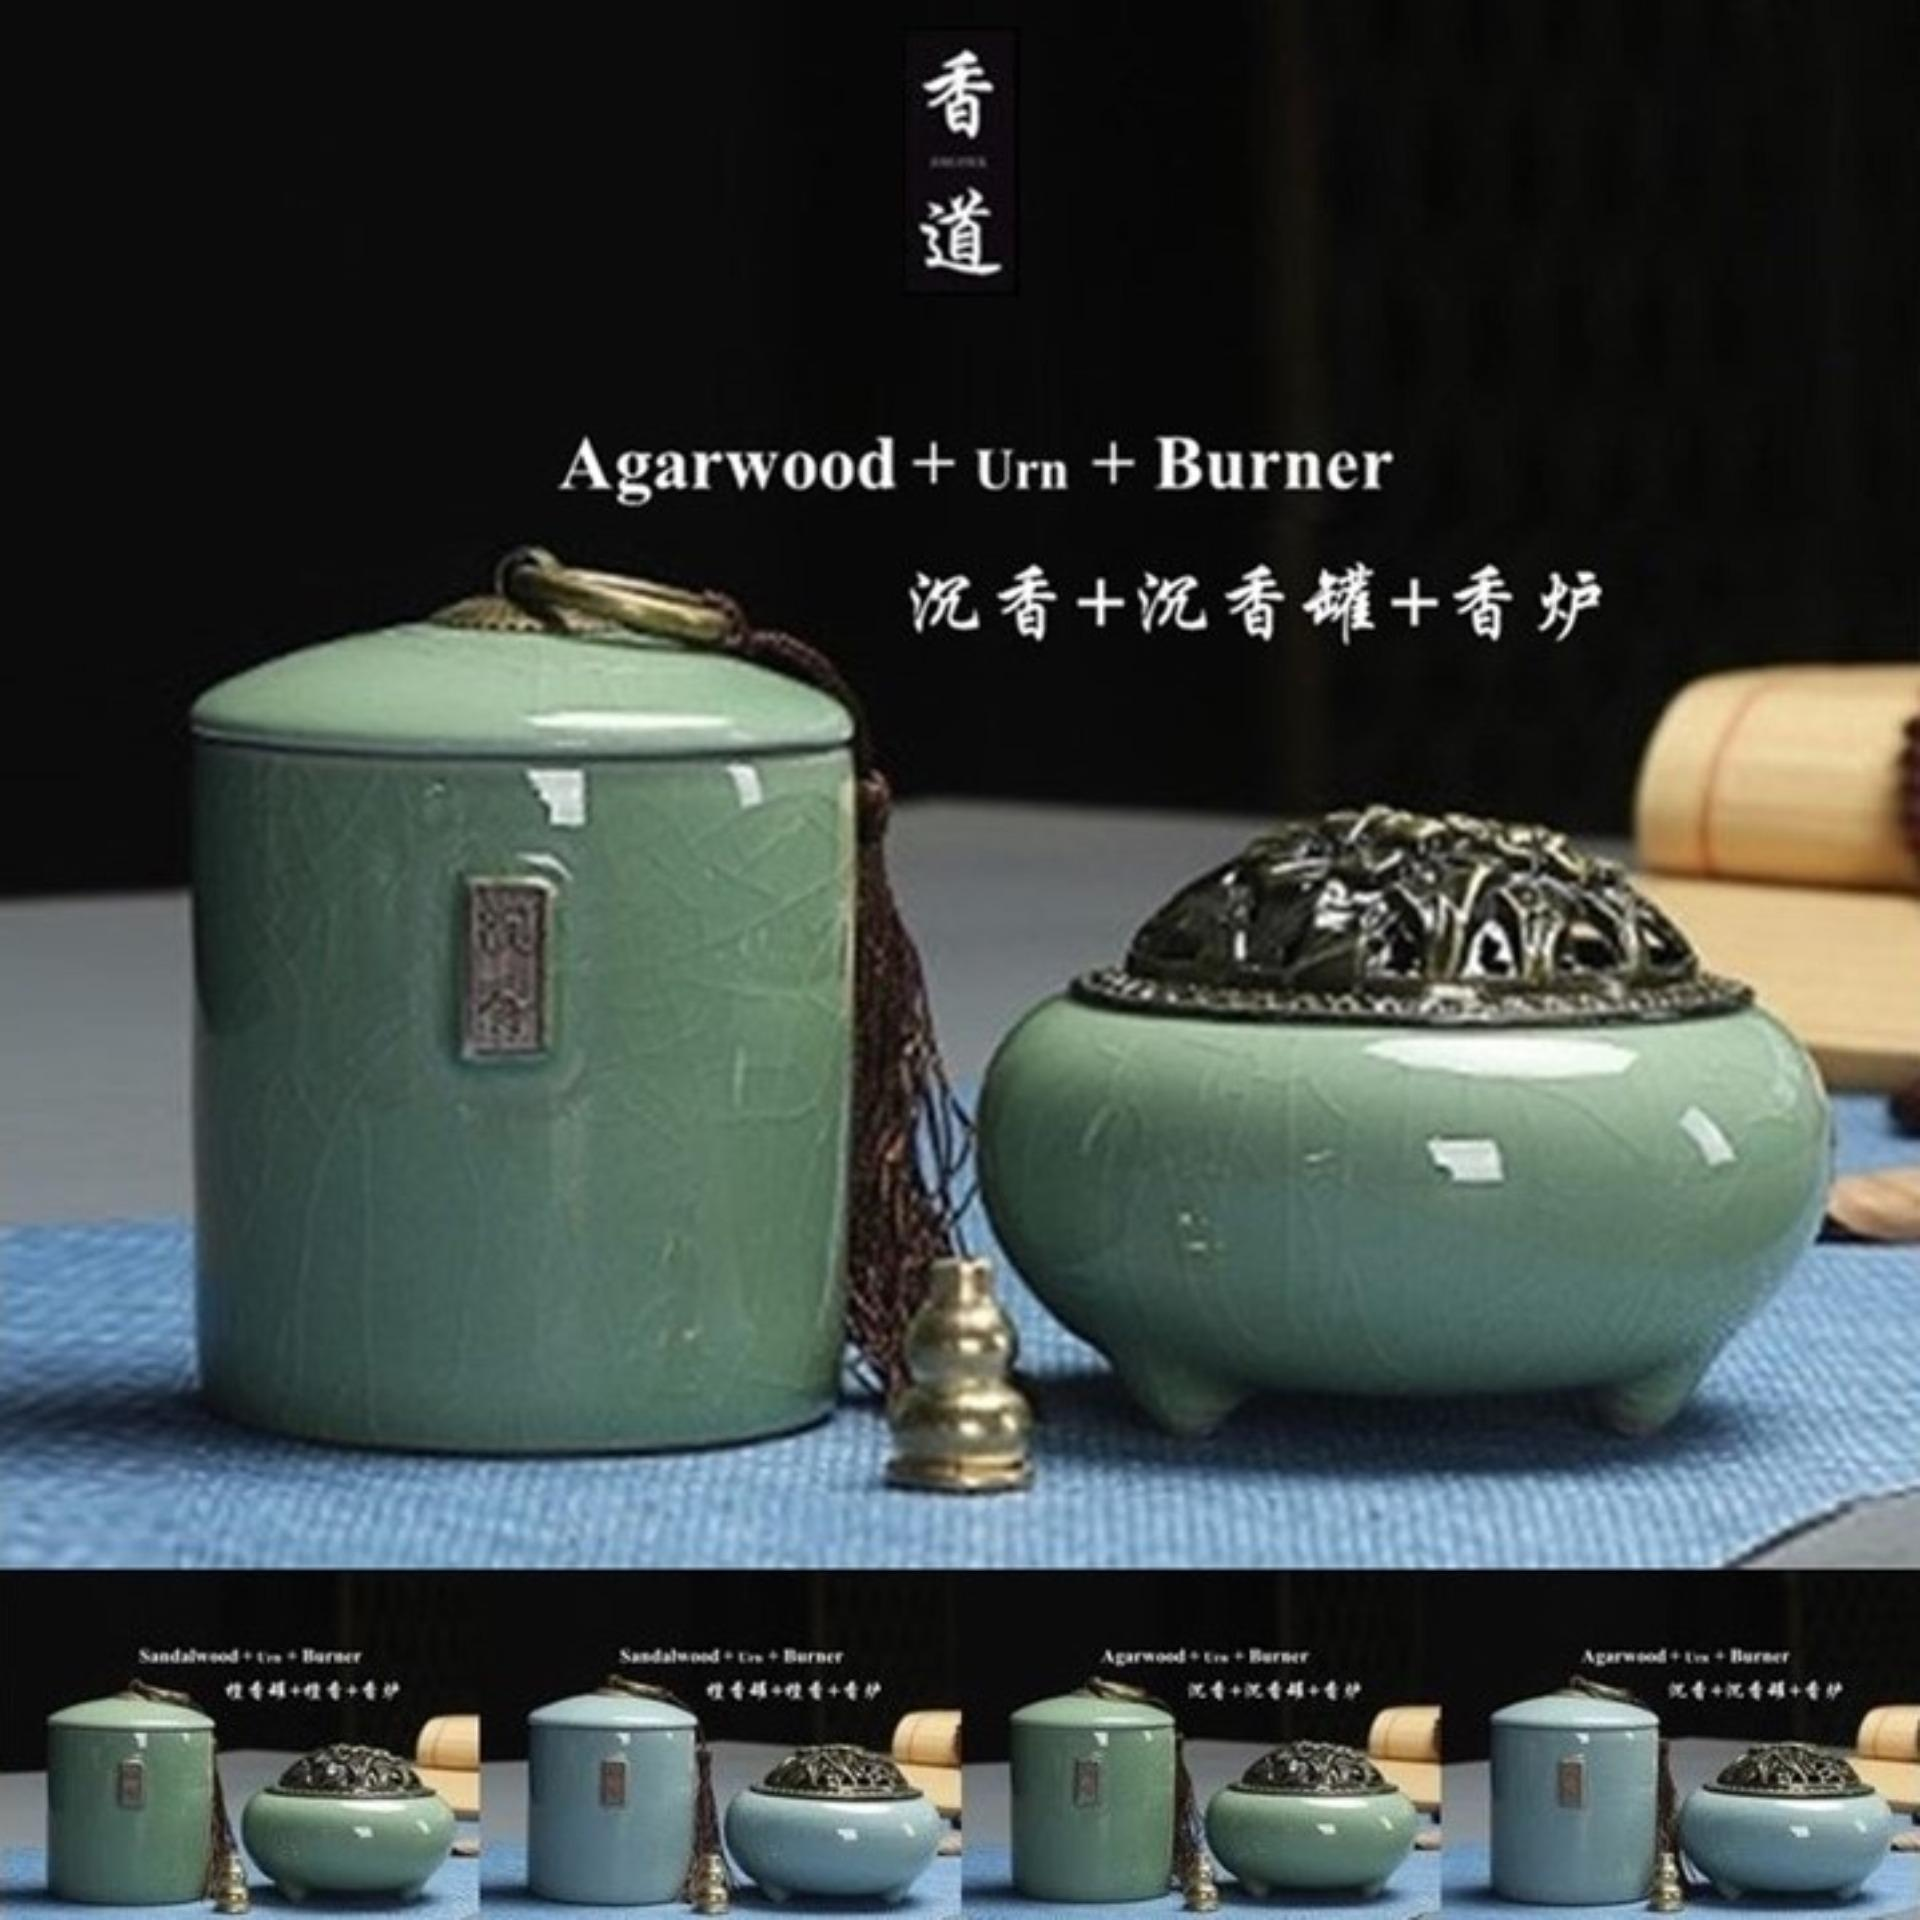 1 set of 2 hours 40pcs Sandalwood (檀香) / Agarwood (沉香) in a Ceramic Container with (哥窑) Exquisite Ceramic Carved Incense Burner